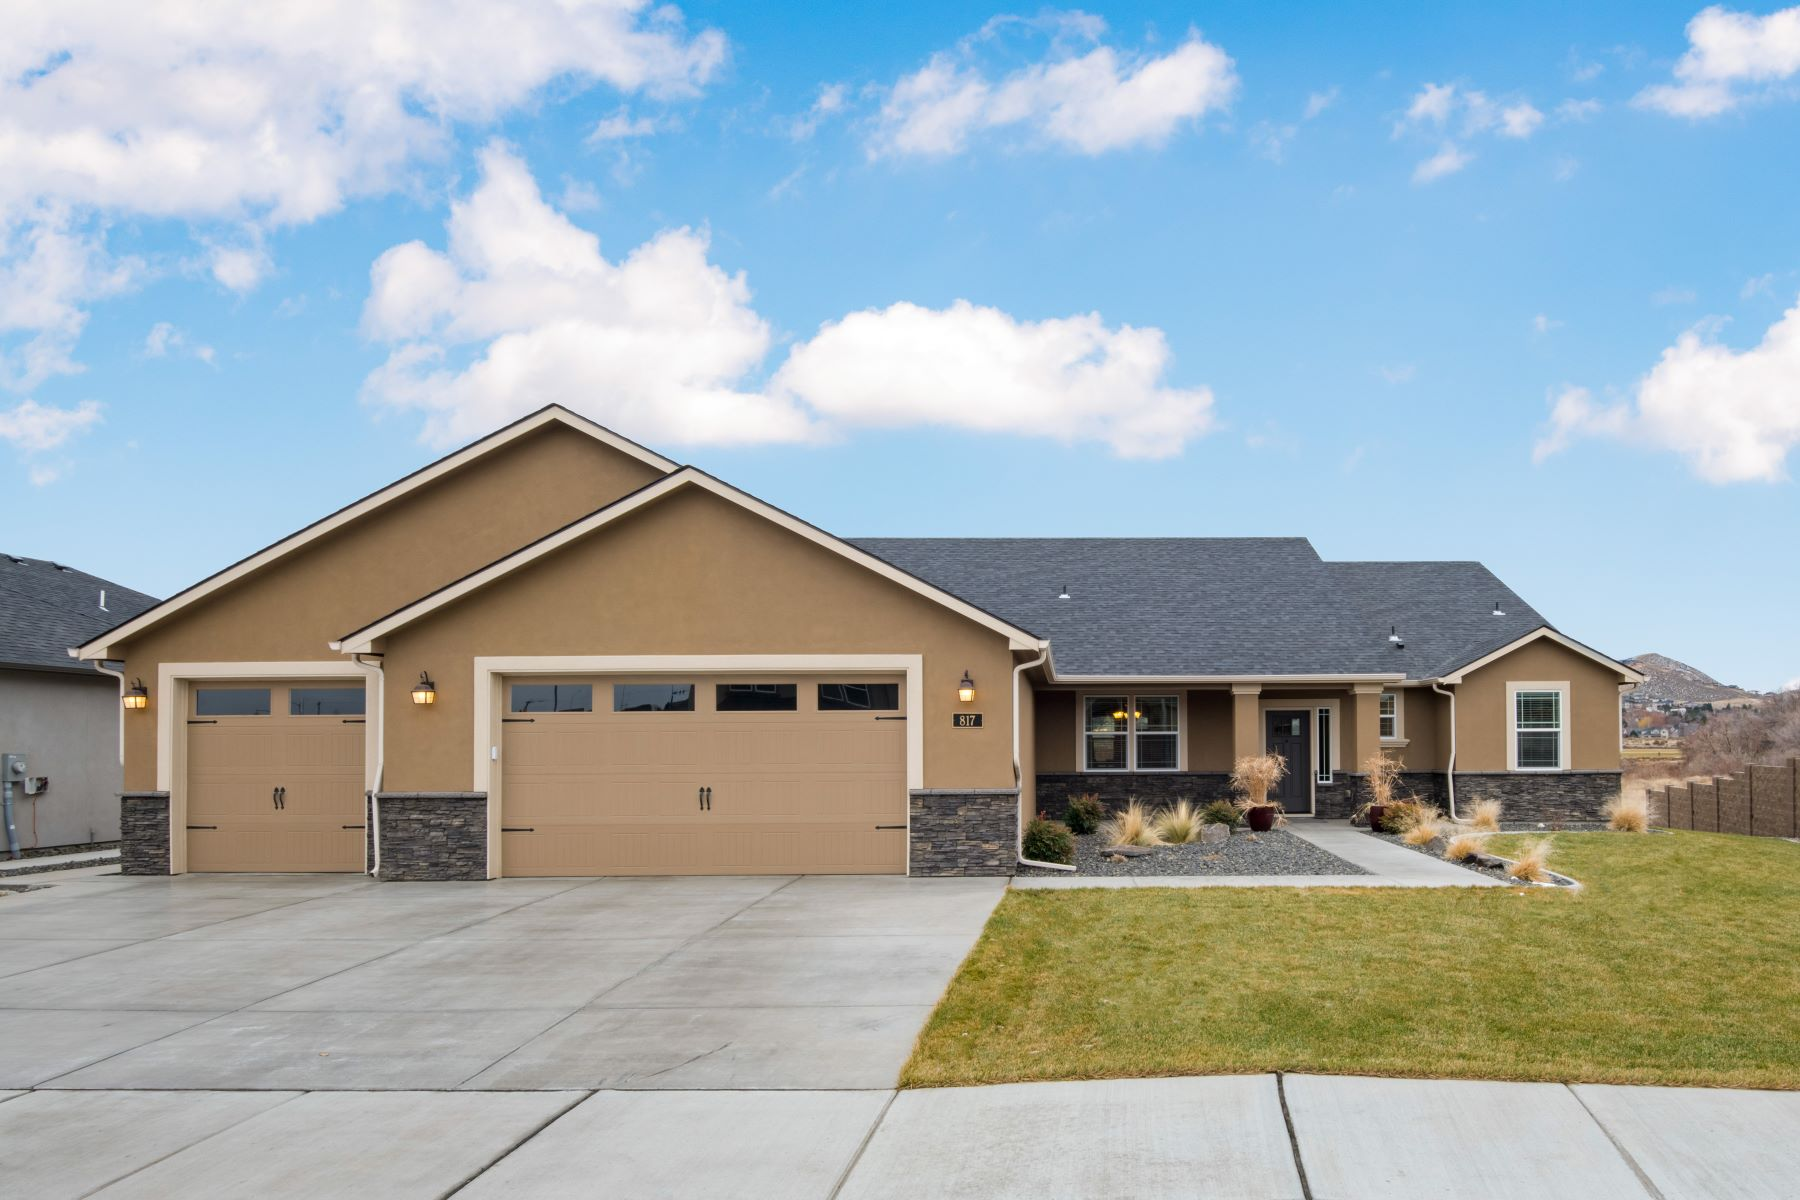 Single Family Homes for Sale at Backs Up to Wildlife Reserve & Walking Path 817 Meadows Drive South Richland, Washington 99352 United States